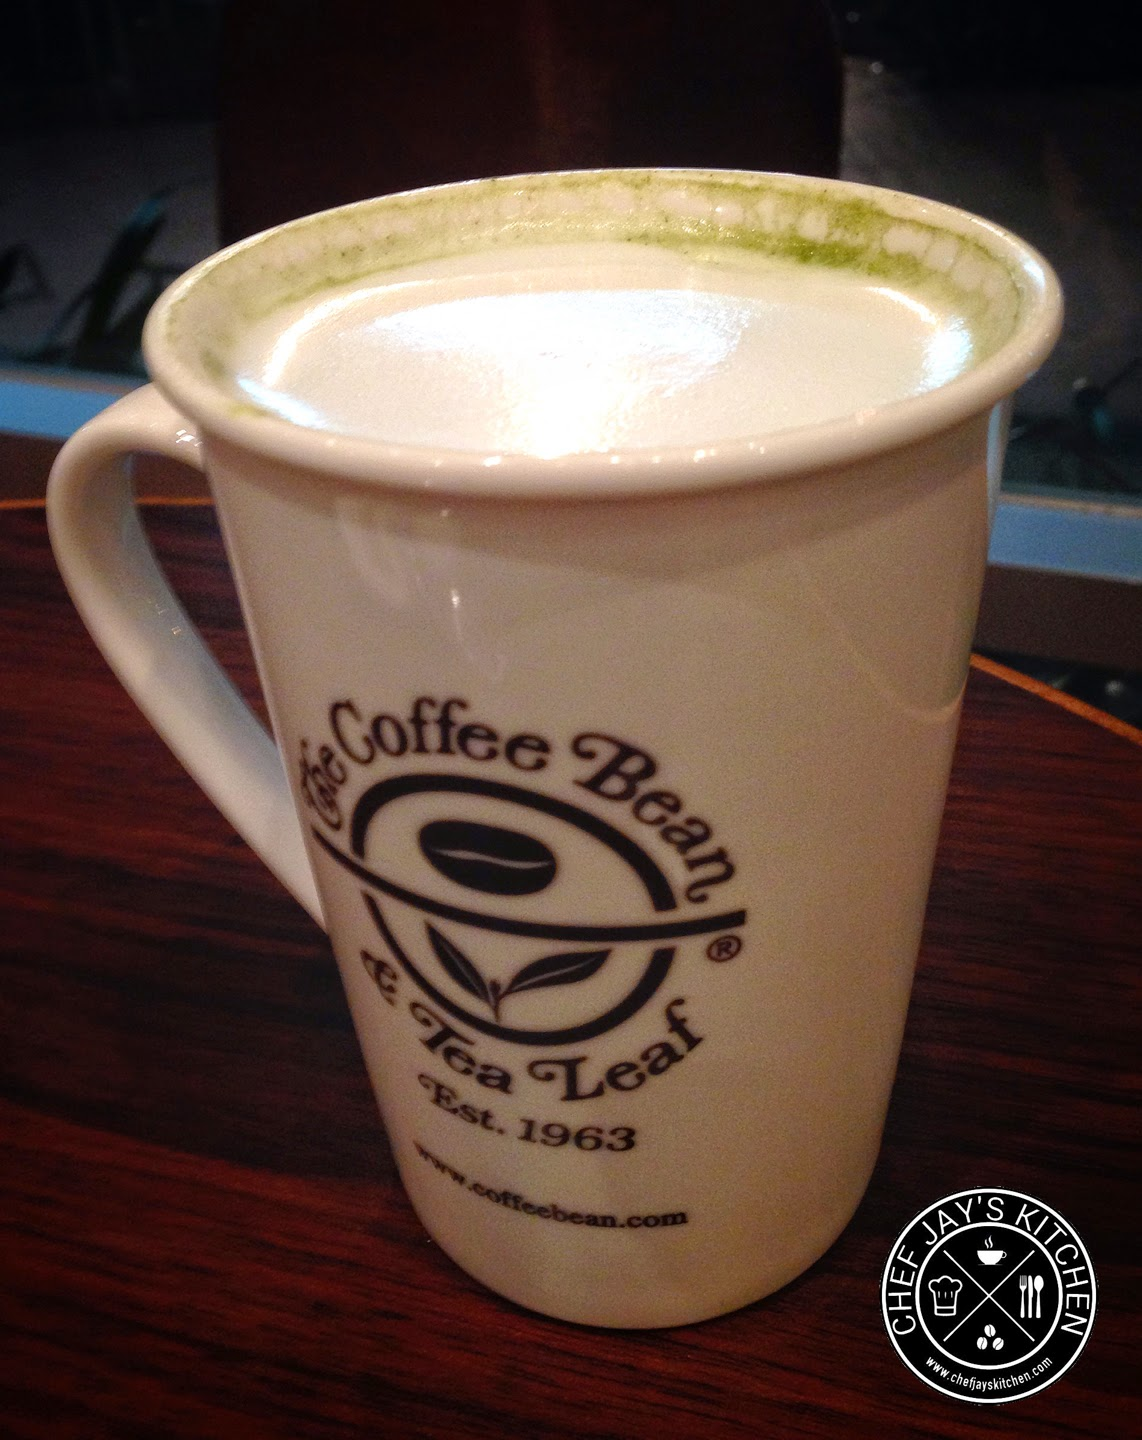 The Coffee Bean & Tea Leaf - CBTL Matcha Tea Latte